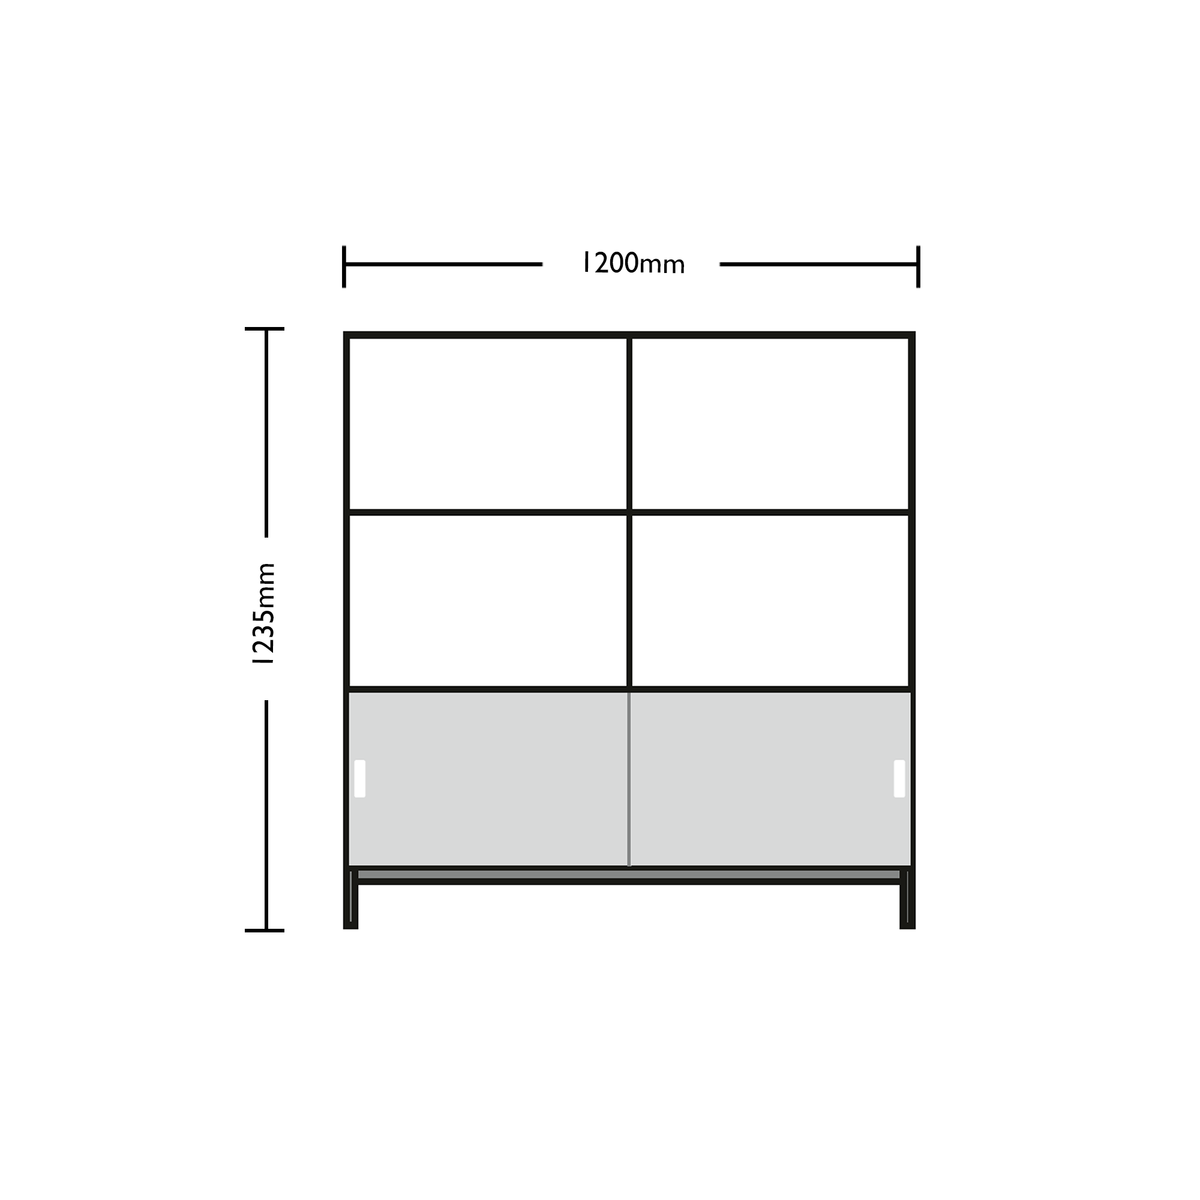 Dimensions for Edsbyn Neat Office Storage